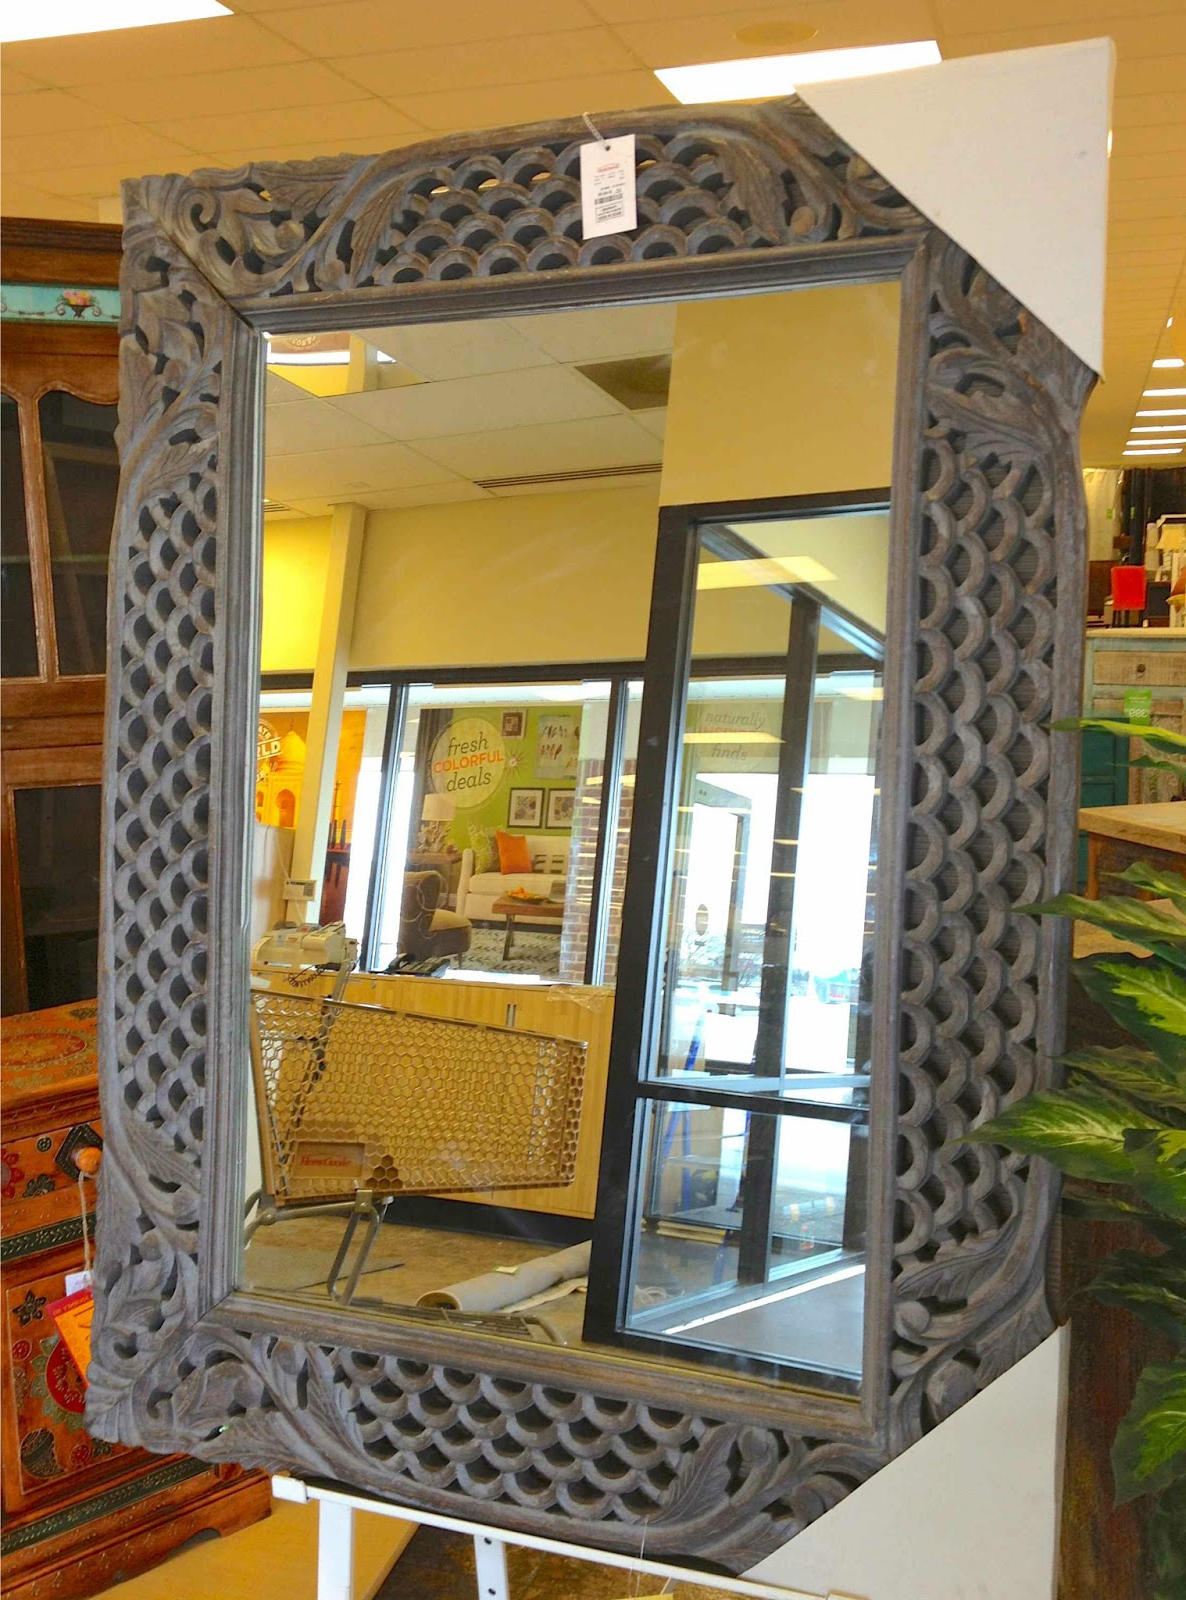 Home Goods Wall Mirrors With Regard To Popular Home Goods Wall Mirrors (Gallery 5 of 20)